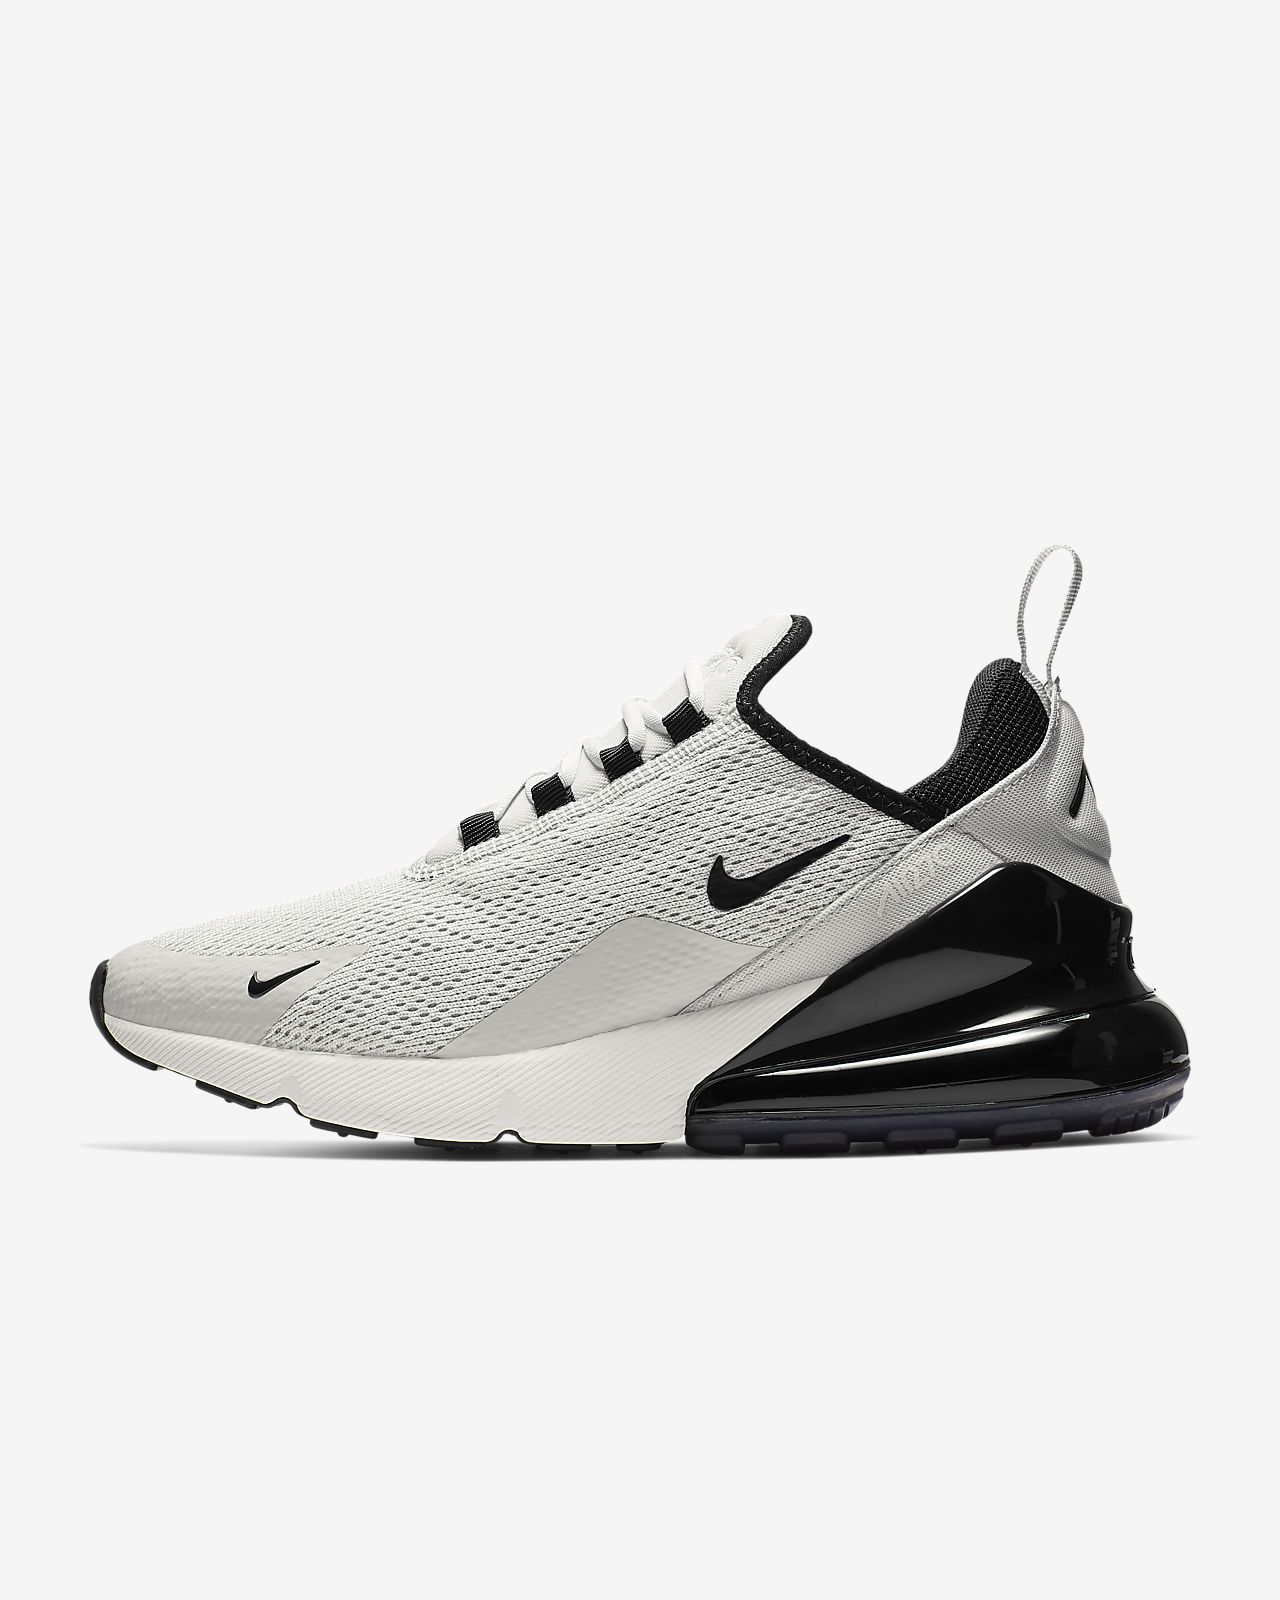 30512032b8 Nike Air Max 270 Women's Shoe. Nike.com ID